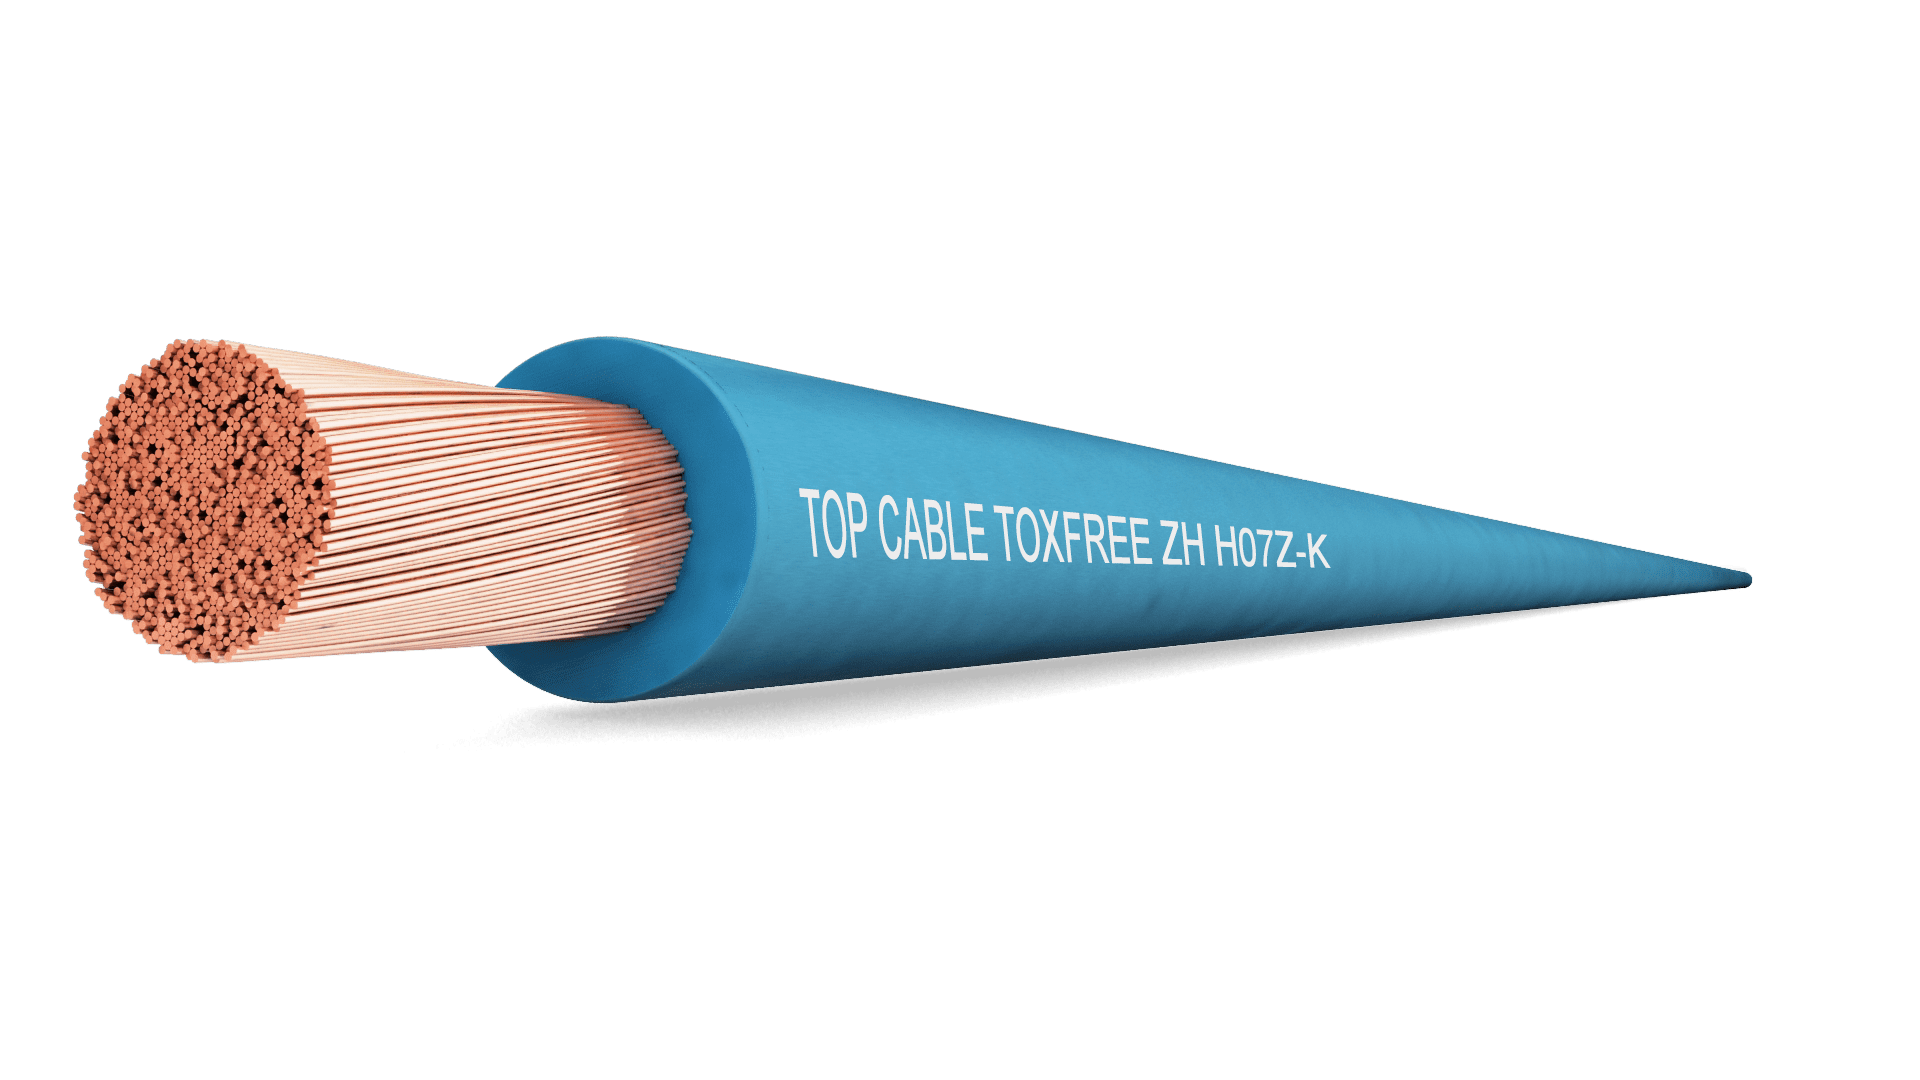 Toxfree Zh H07z K Flexible And Halogen Free Cable Top Cable